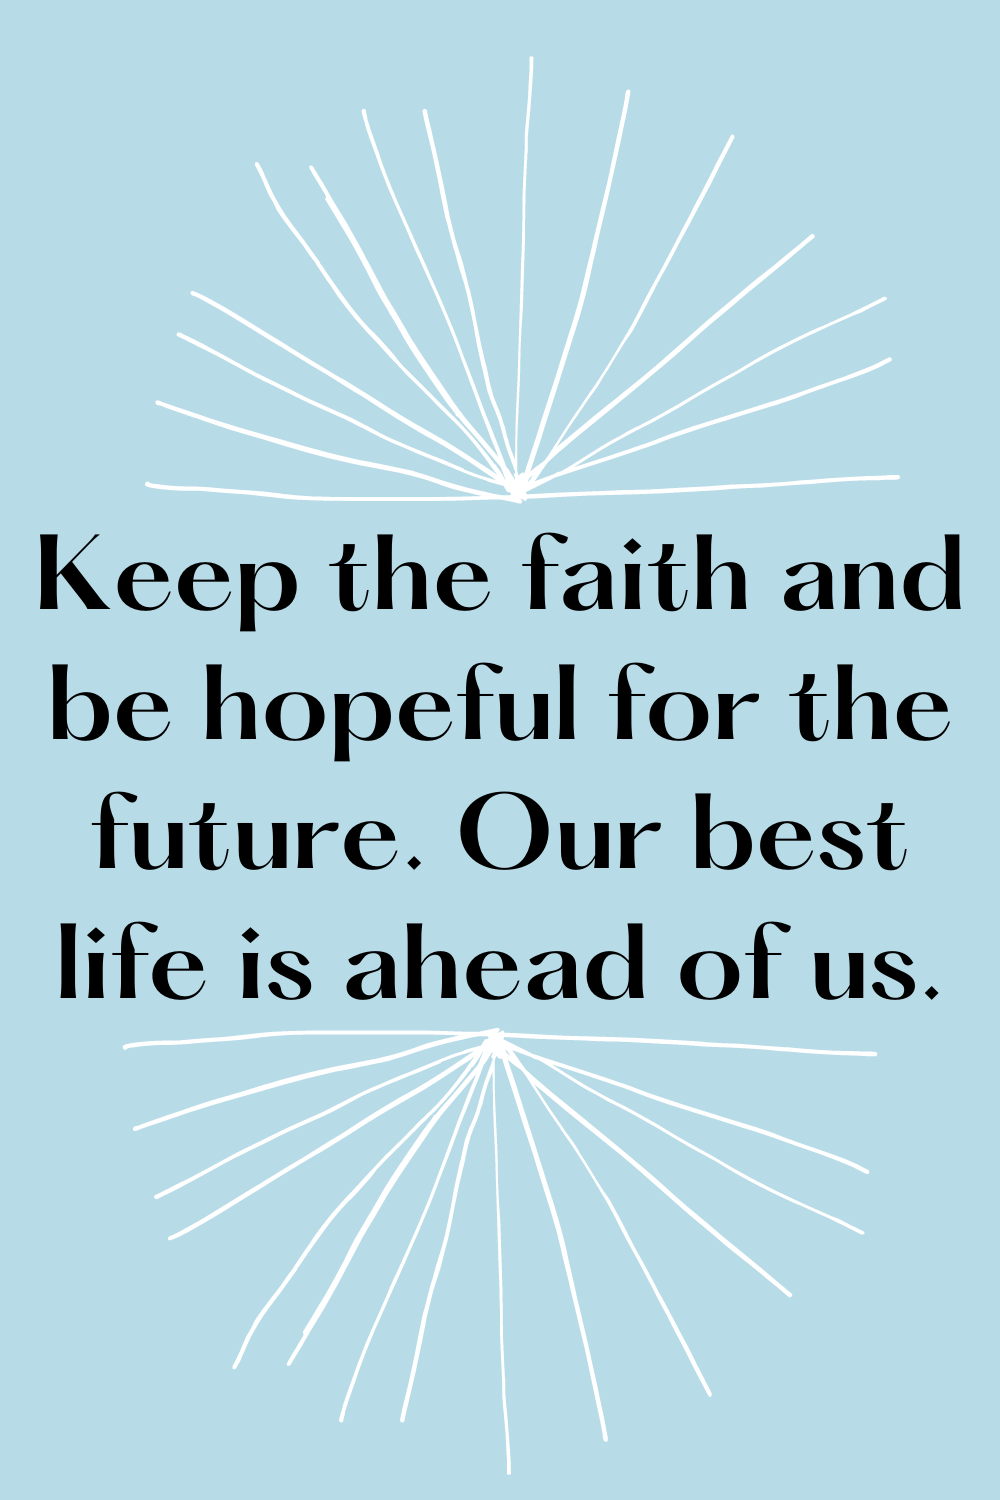 Christian Quotes On Keeping The Faith